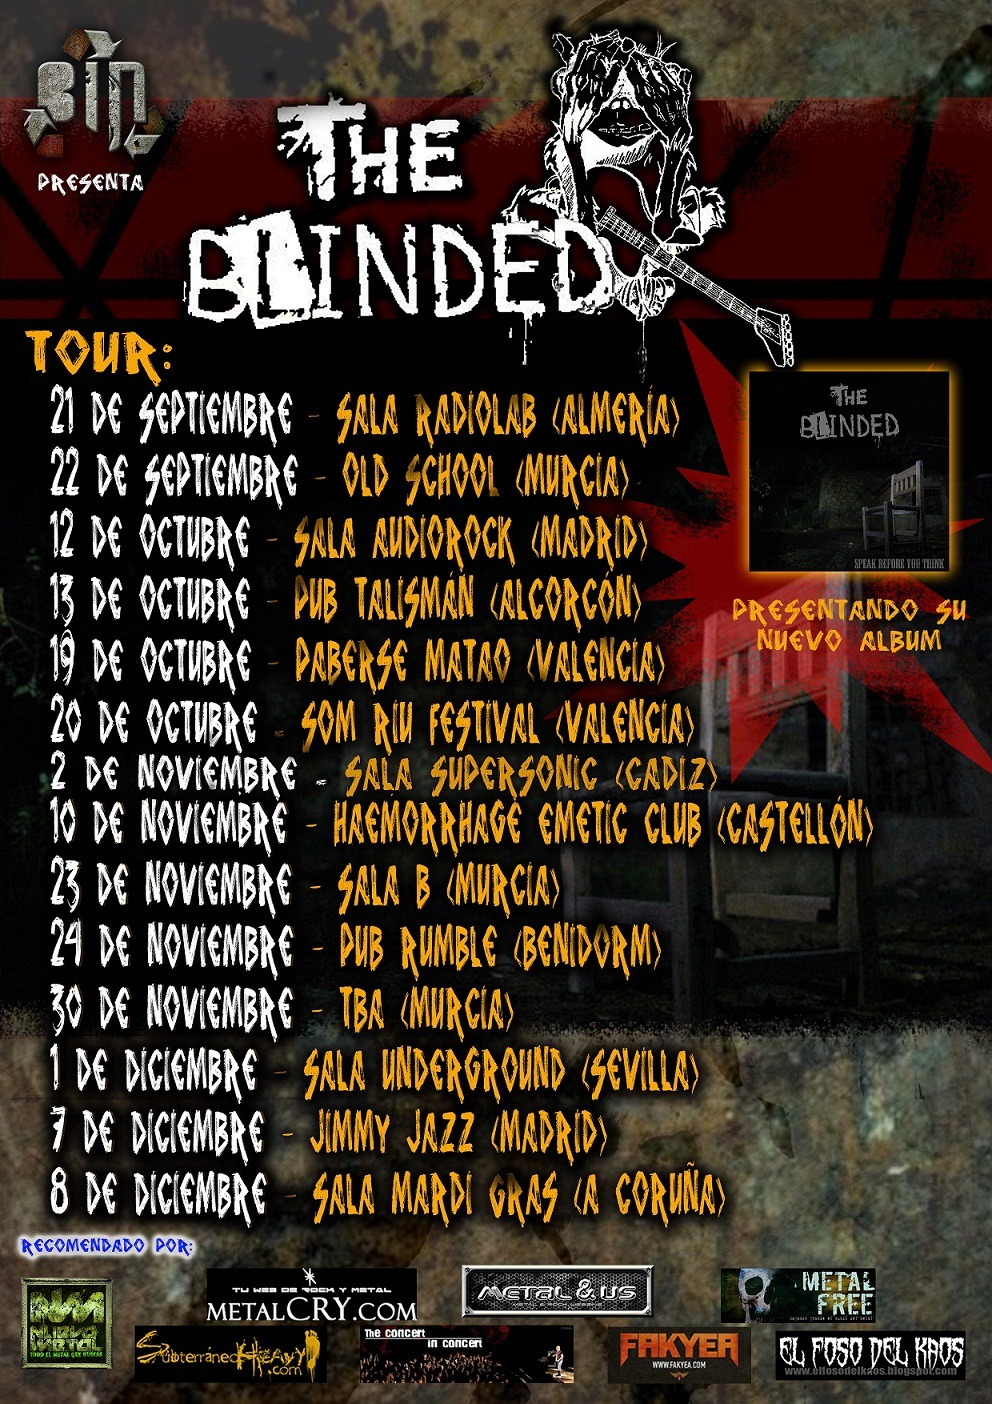 THE BLINDED – Tour speak Before You Think Part II